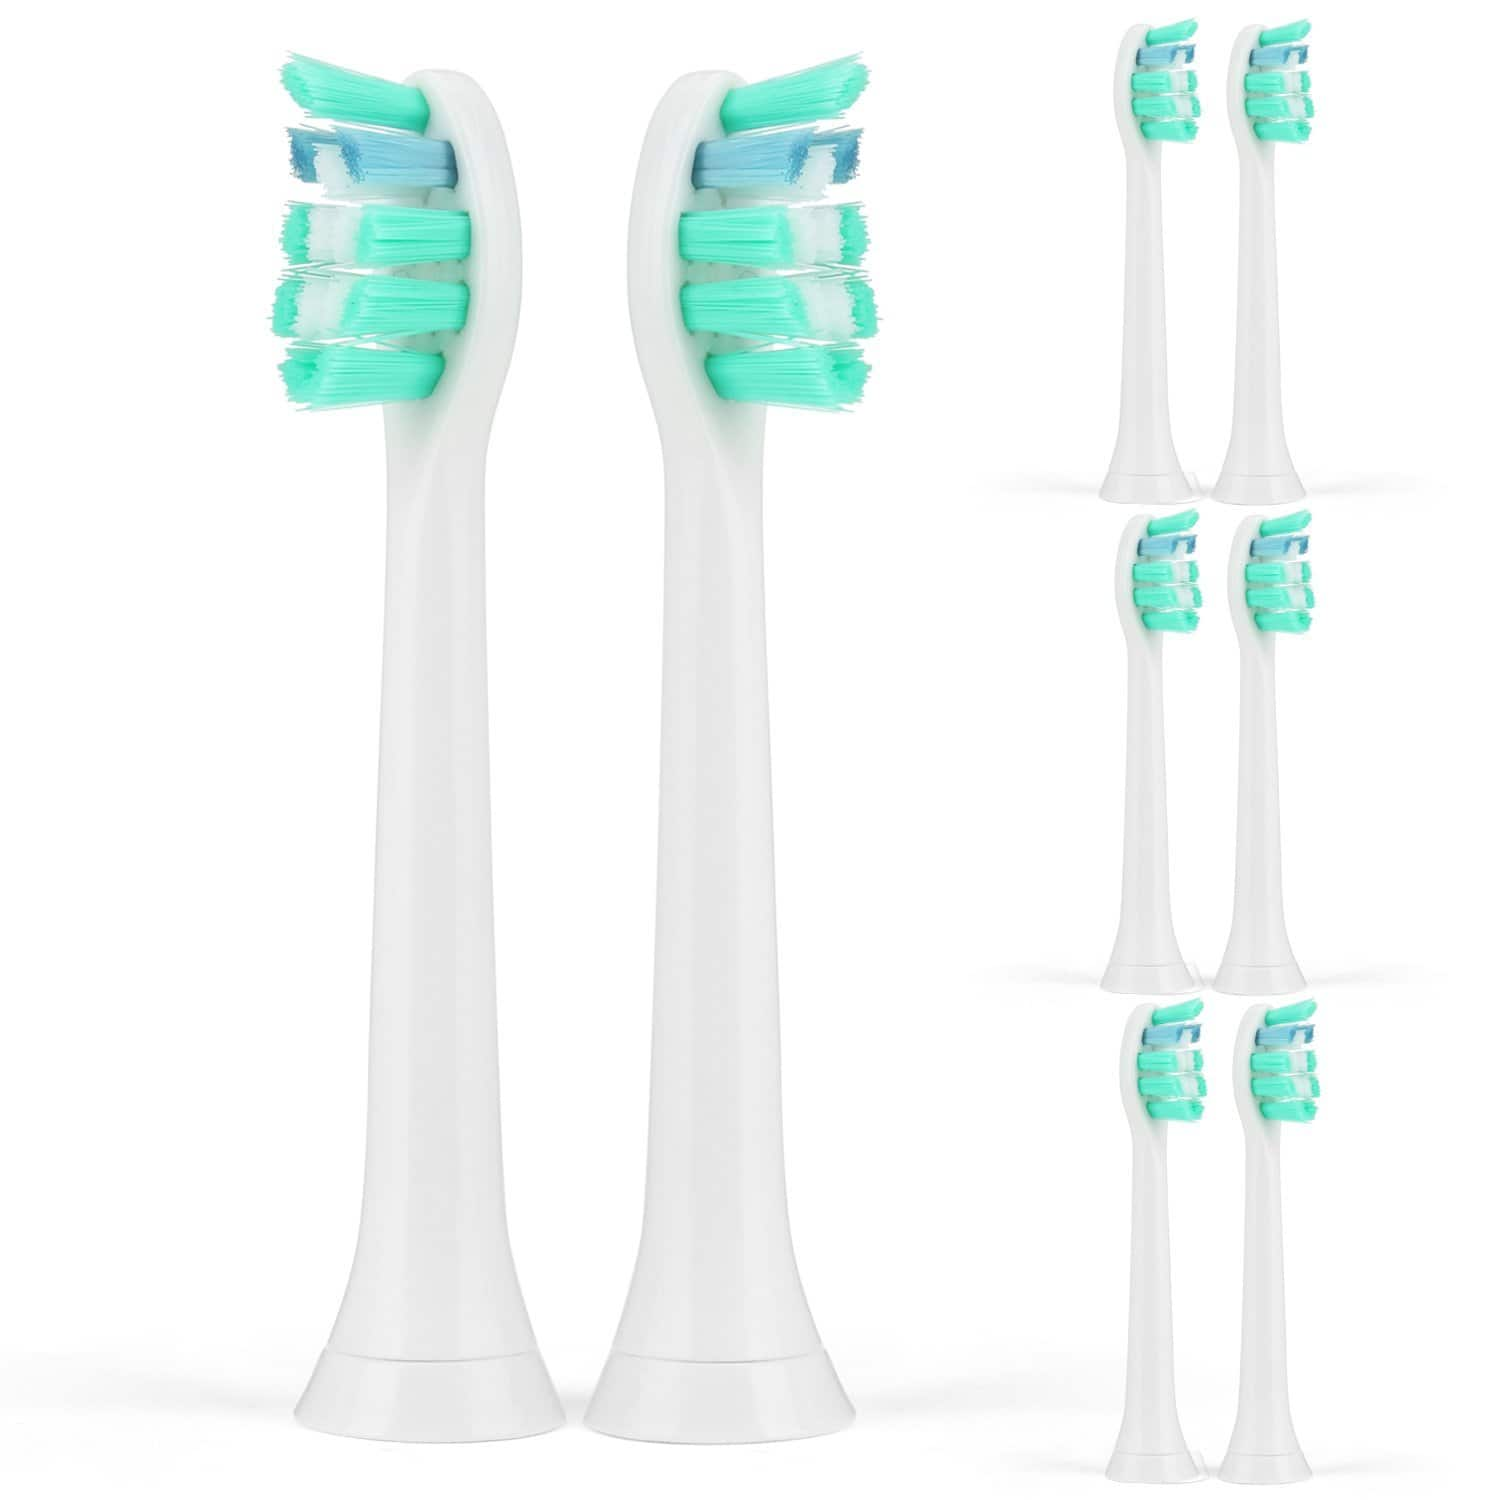 Sonicare Toothbrush Replacement Heads w/ Cap 4 Pack - $5.56, 8 Pack - $7.31 FS